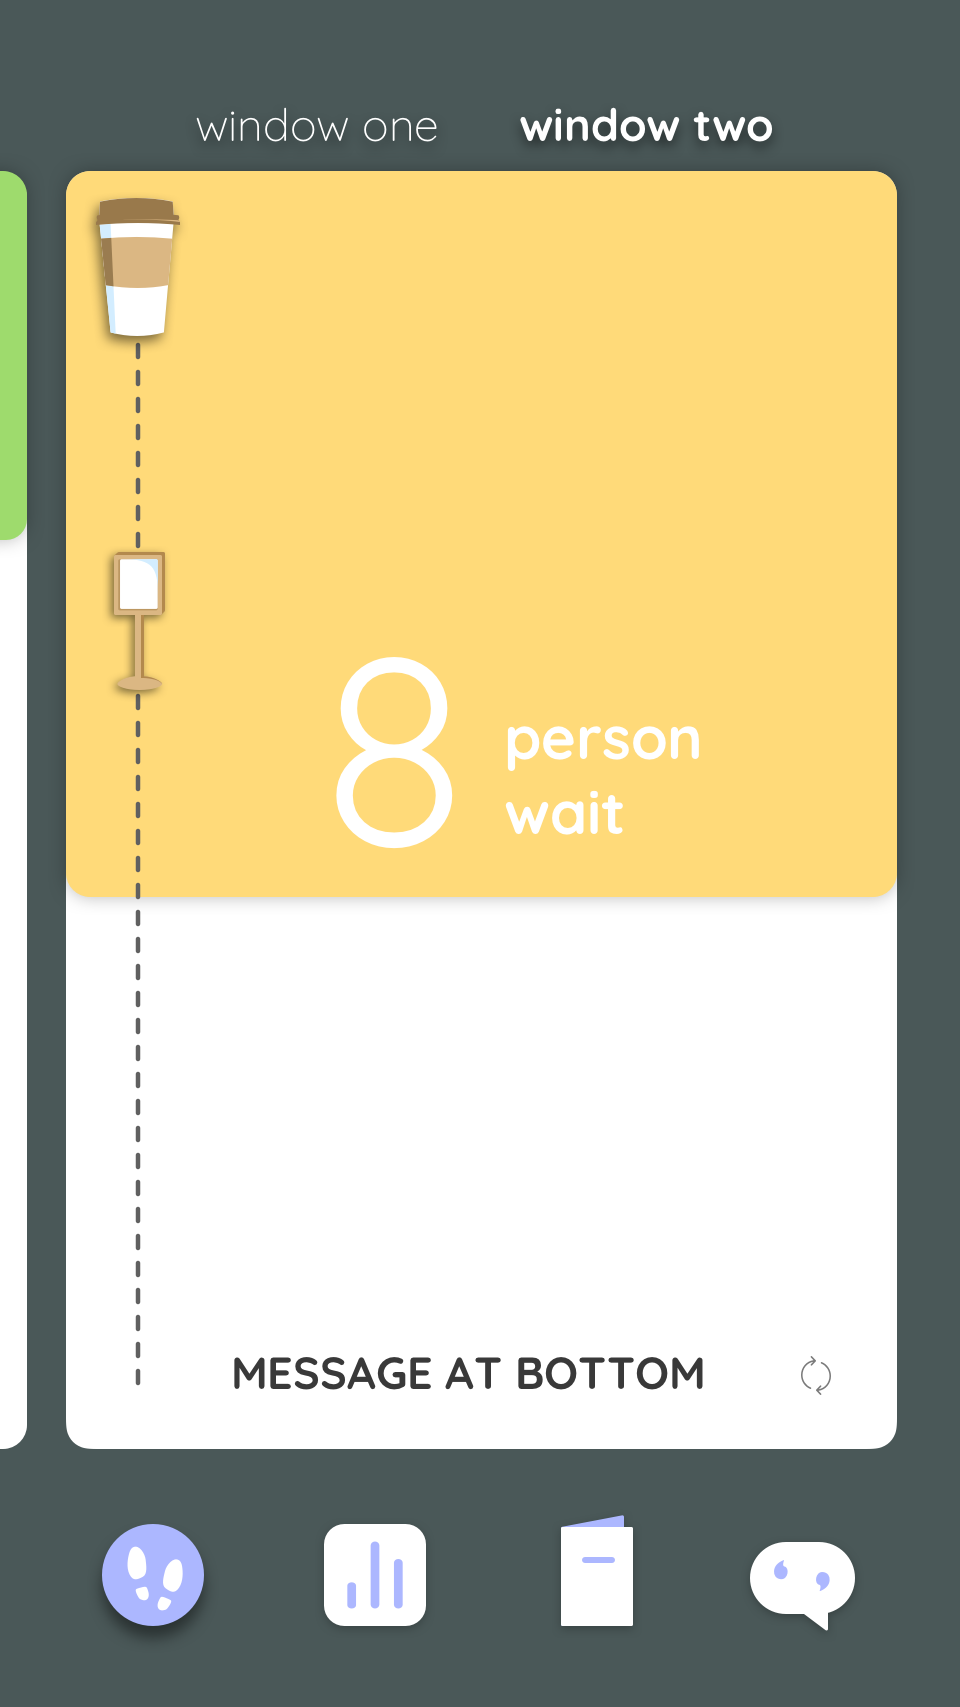 LINE 2 (15 PEOPLE).png